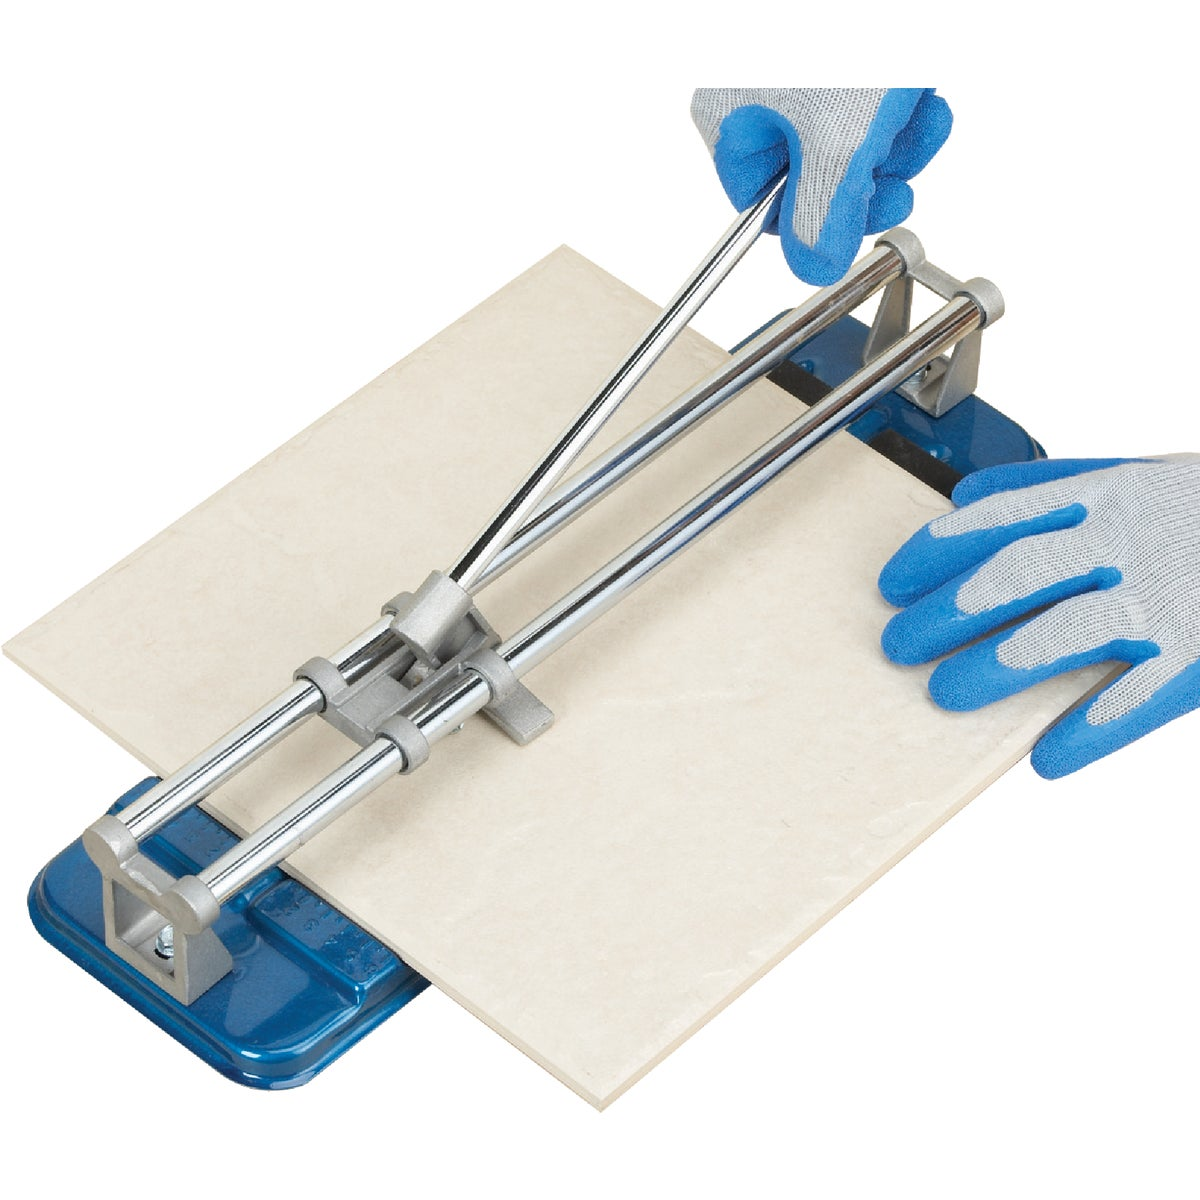 "12"" TILE CUTTER - 317384 by Do it Best"